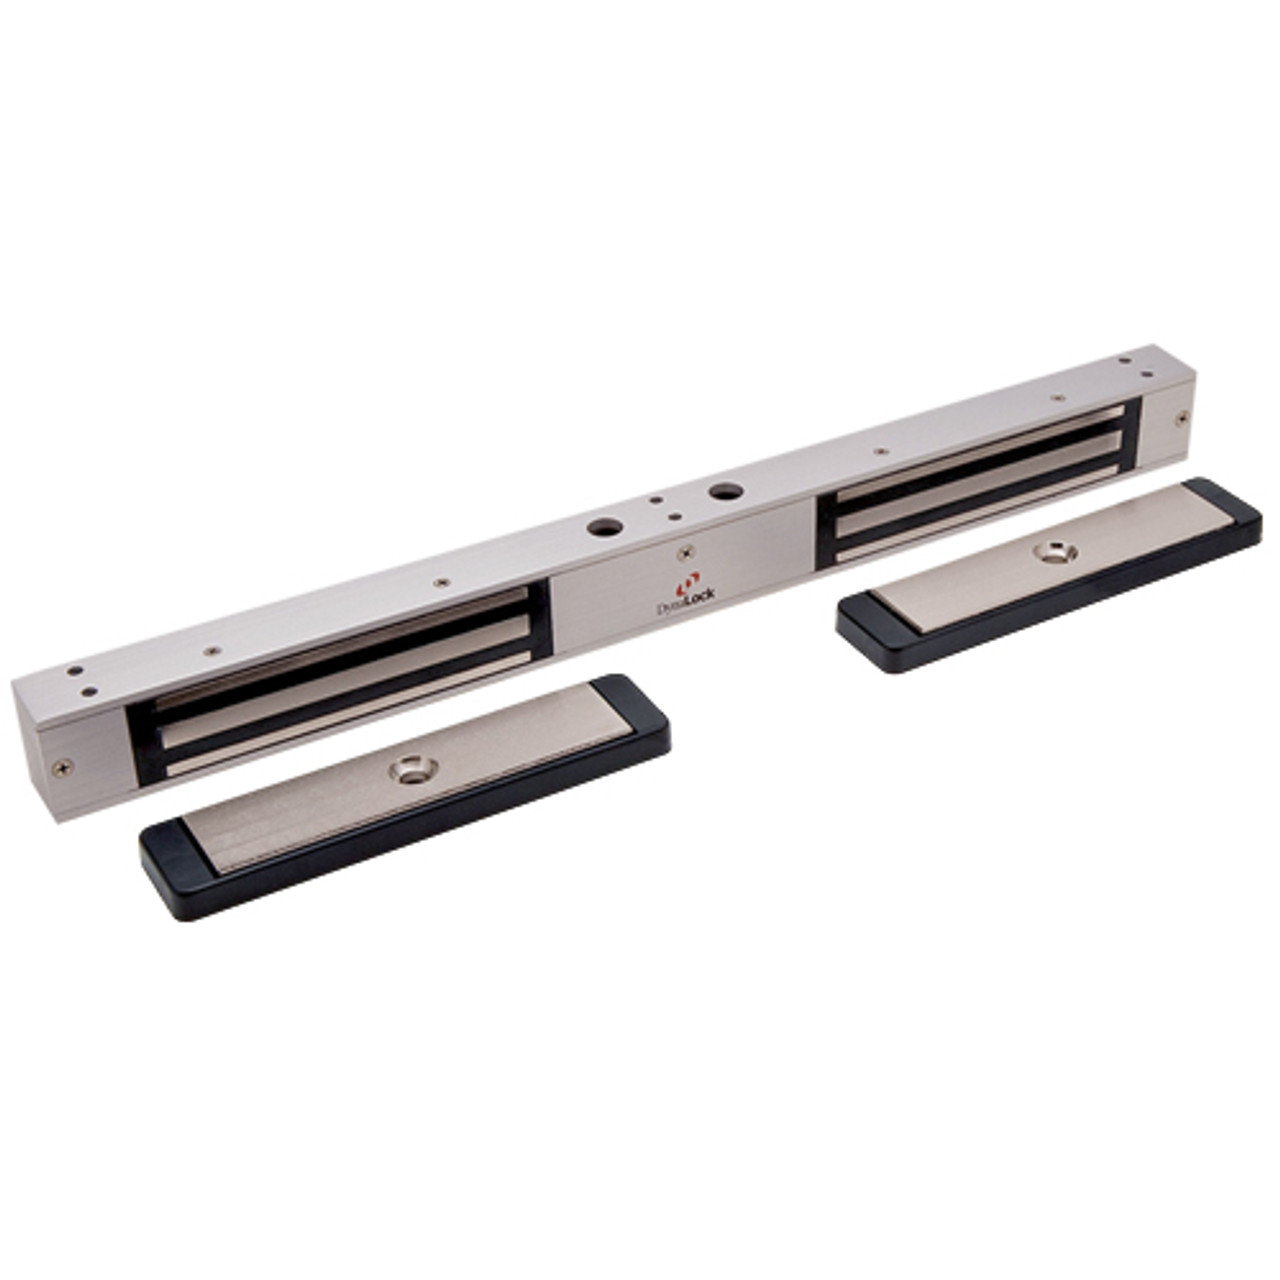 2522-US28-DYN2 DynaLock 2500 Series 650 LB Mini-Mag Double Electromagnetic Lock for Outswing Door with Dynastat Force Sensor in Satin Aluminum